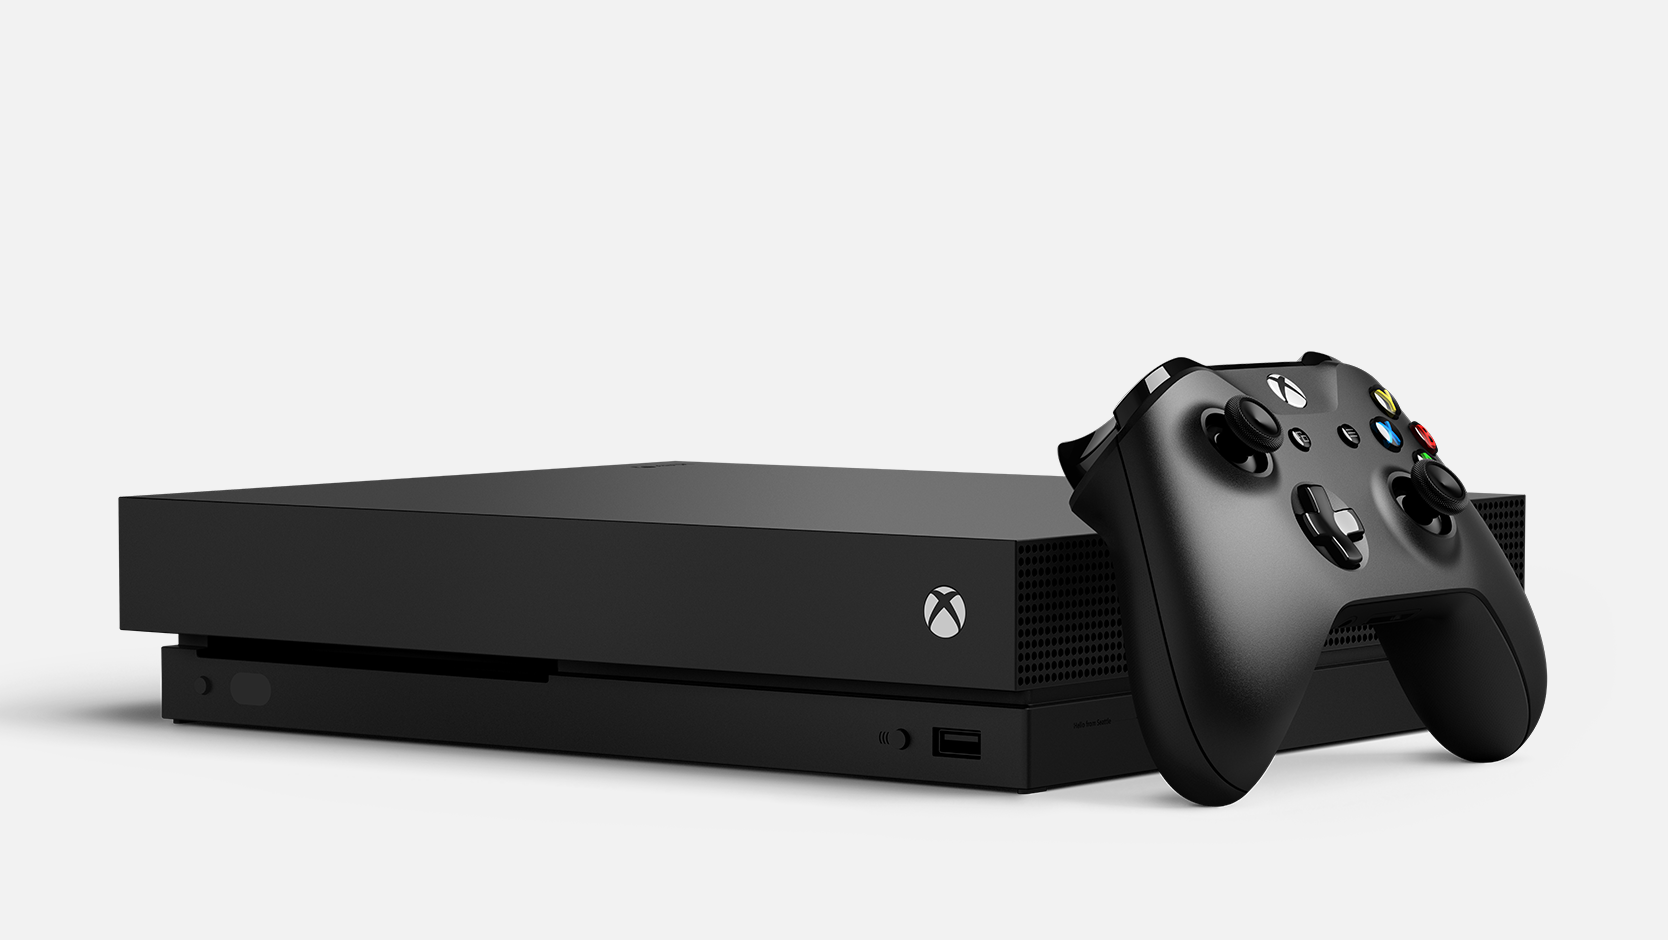 Xbox One X console, Xbox Wireless Controller